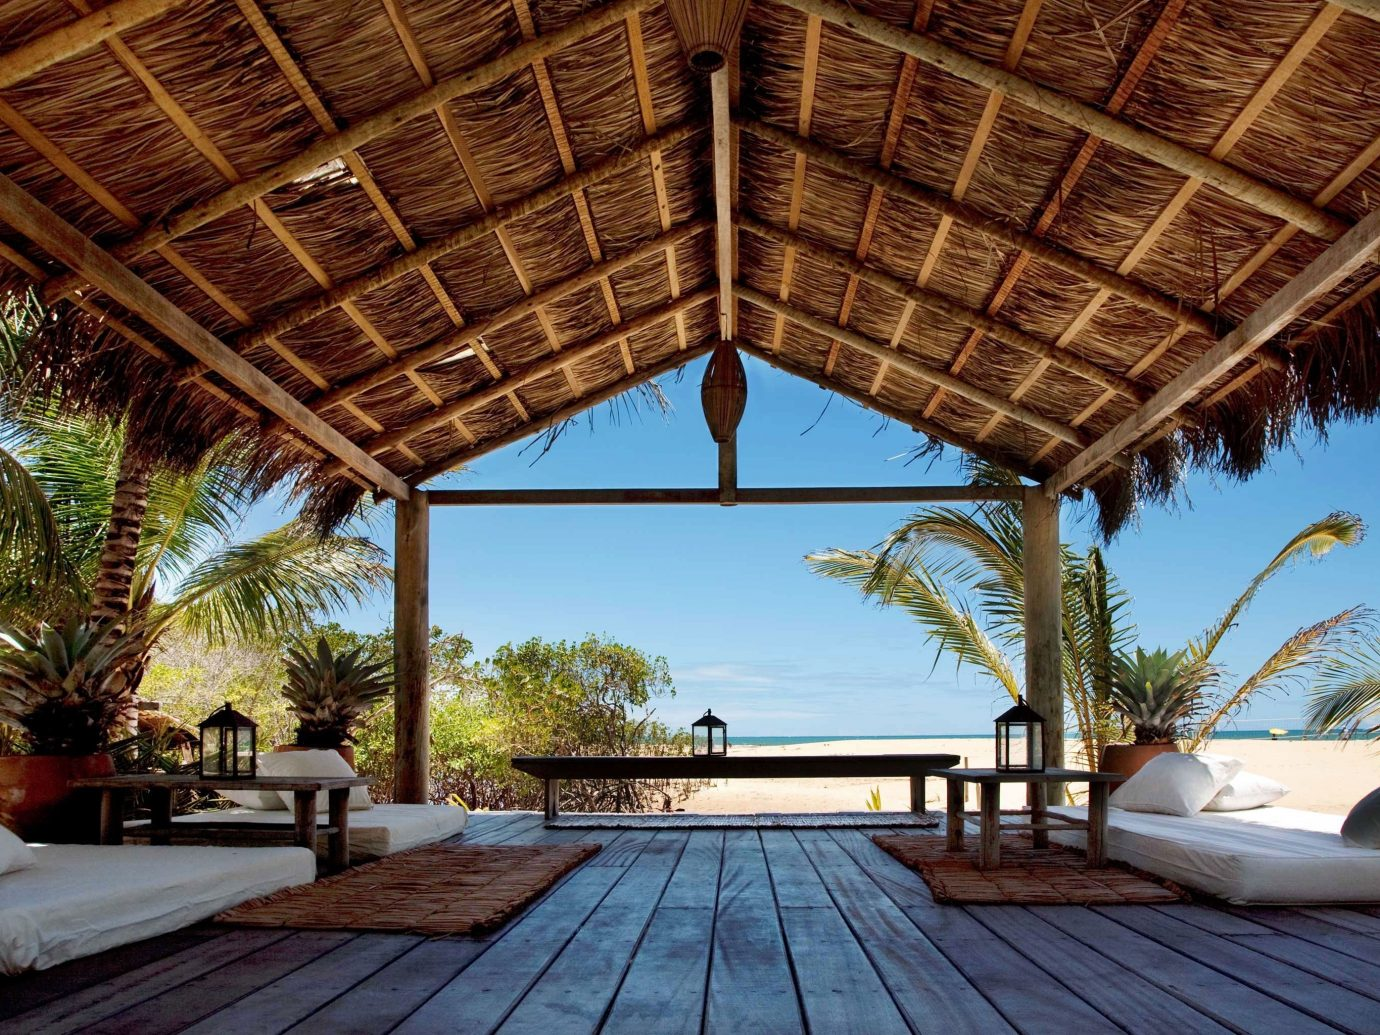 Trip Ideas building property estate Resort swimming pool outdoor structure home Villa real estate porch wood cottage backyard farmhouse colonnade